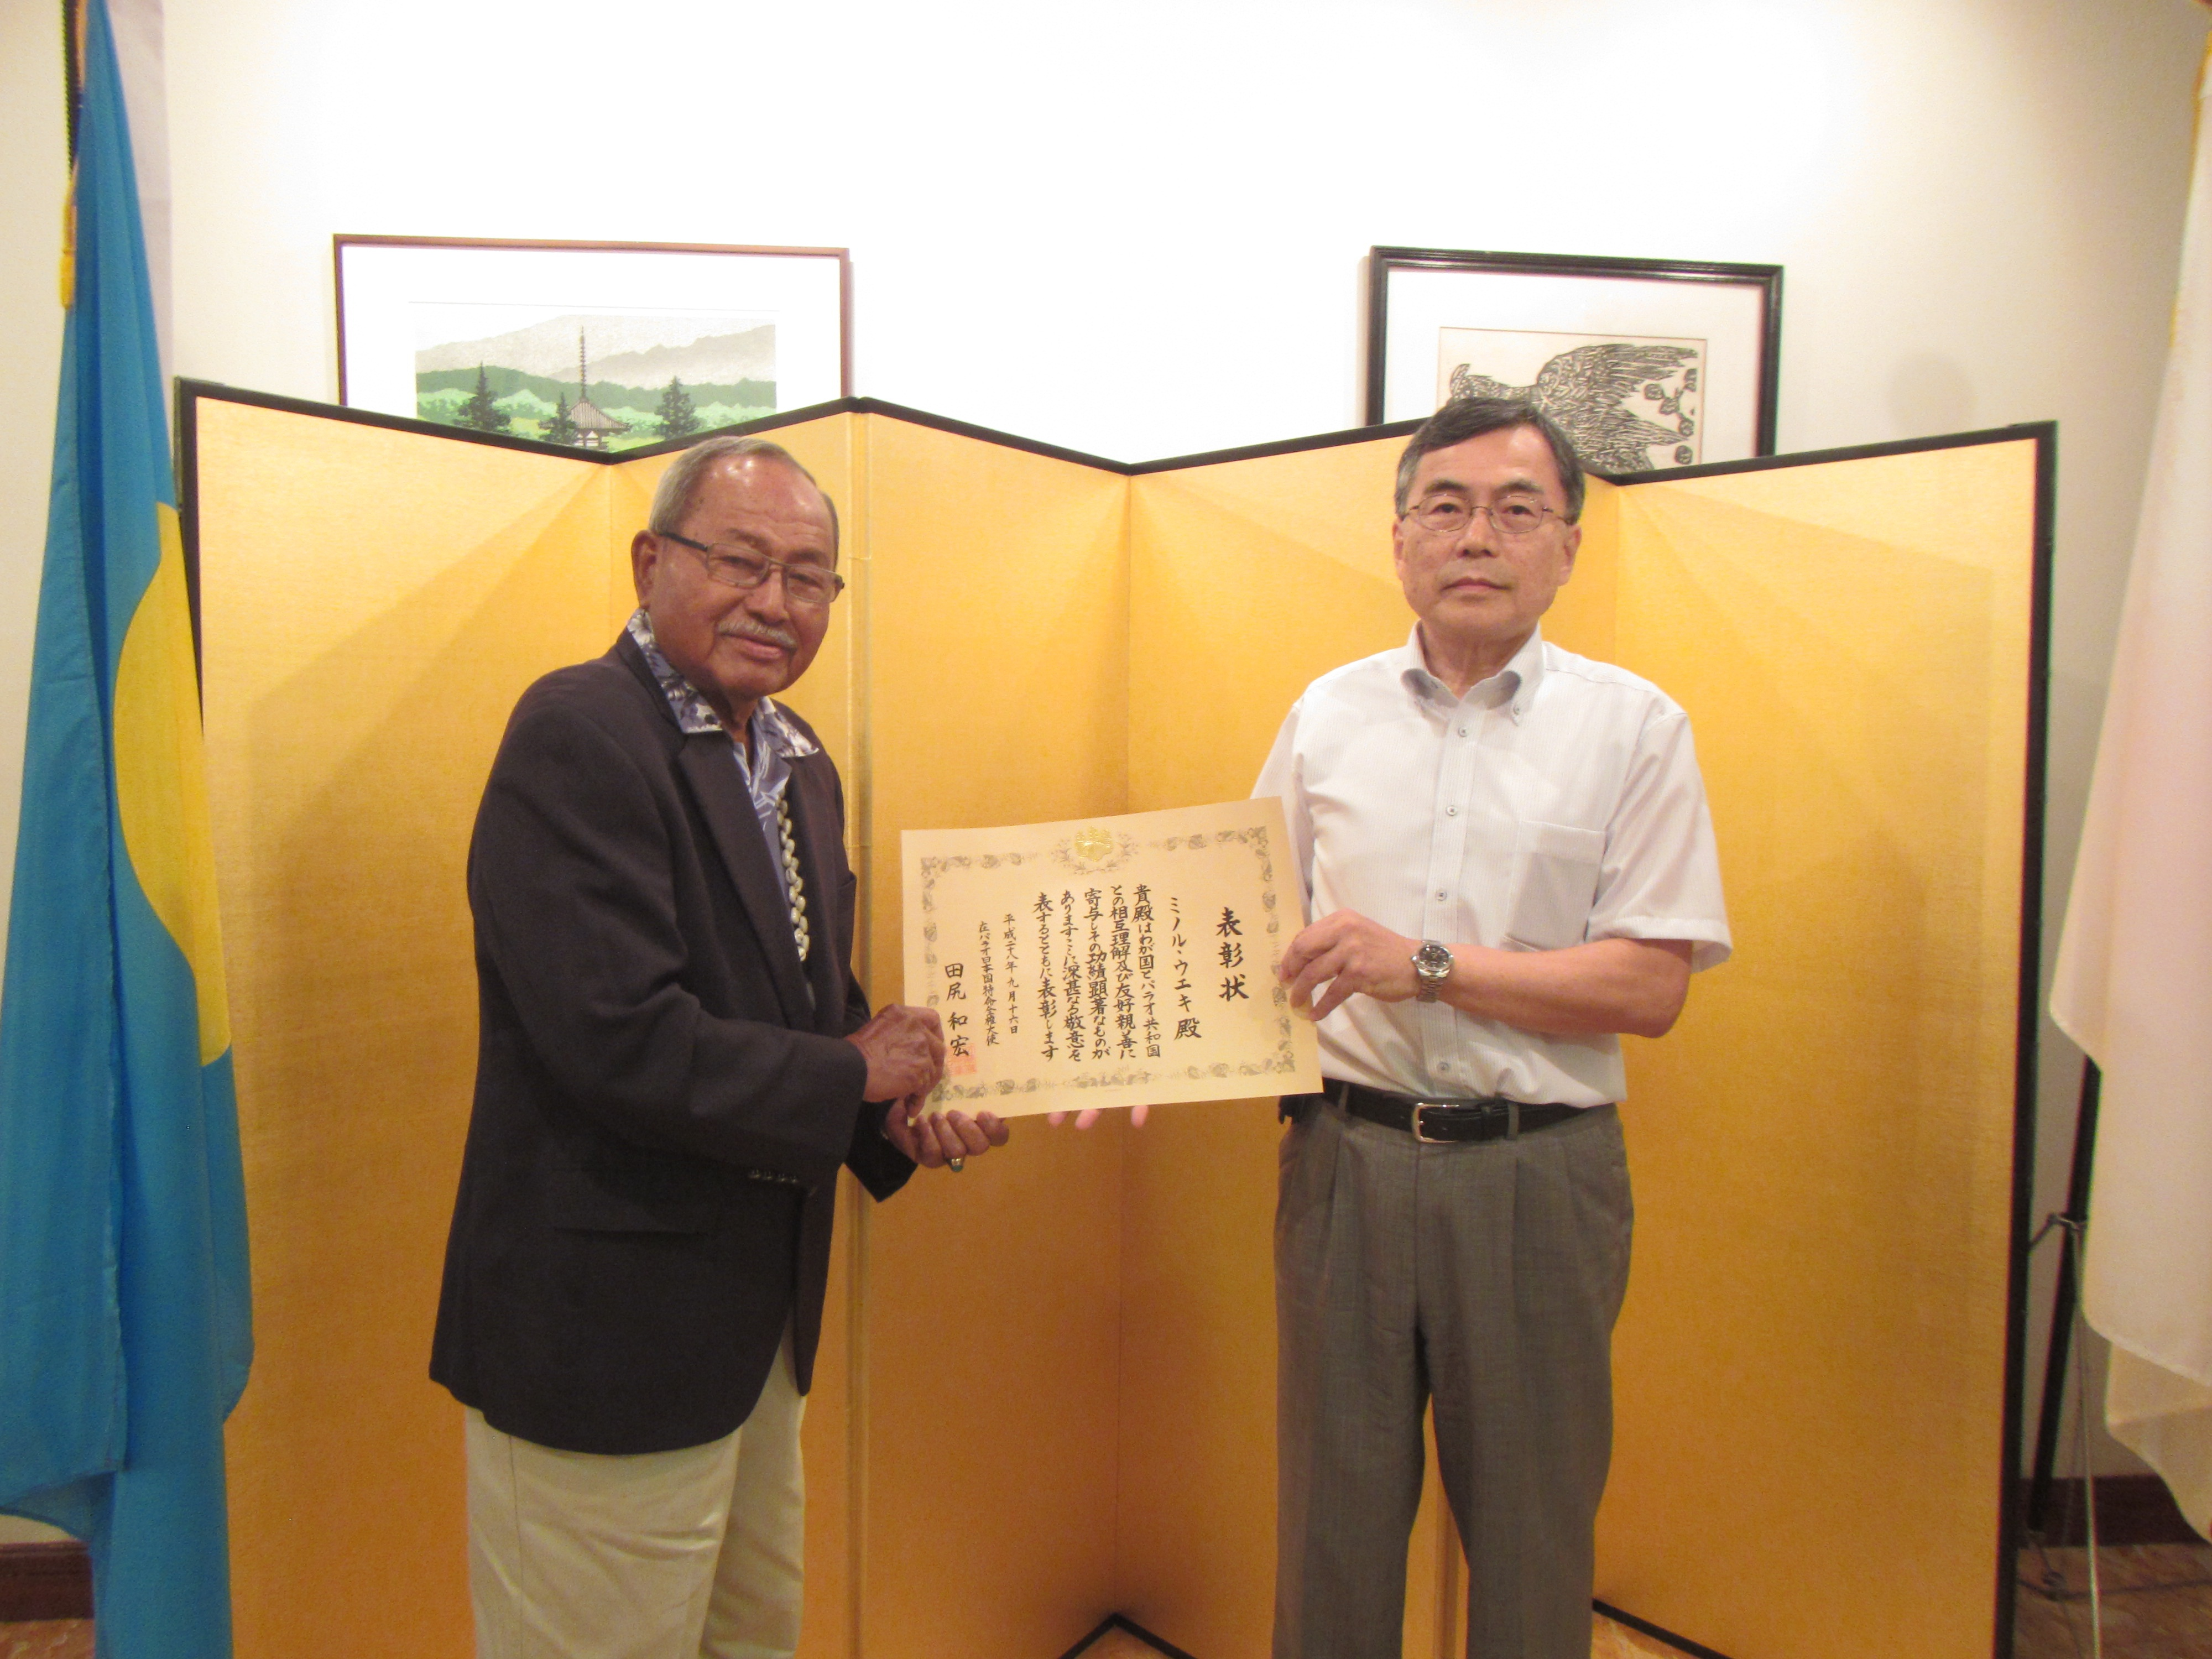 Presentation of Certificate of Commendation (Dr. Ueki and Ambassador Tajiri)